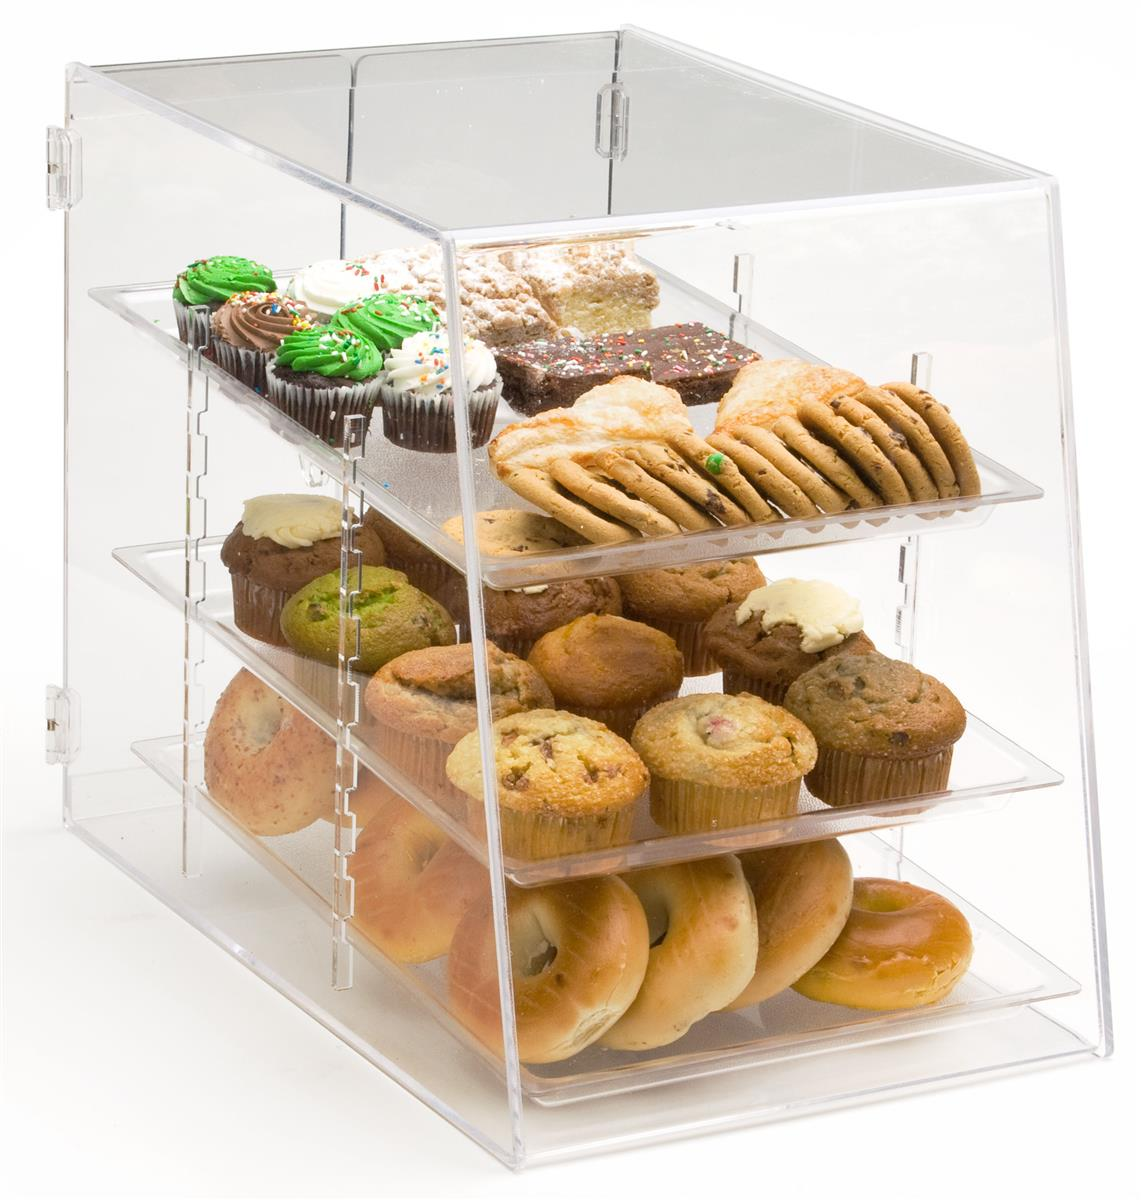 Food Bin For Bakeries 3 Removable Plastic Trays